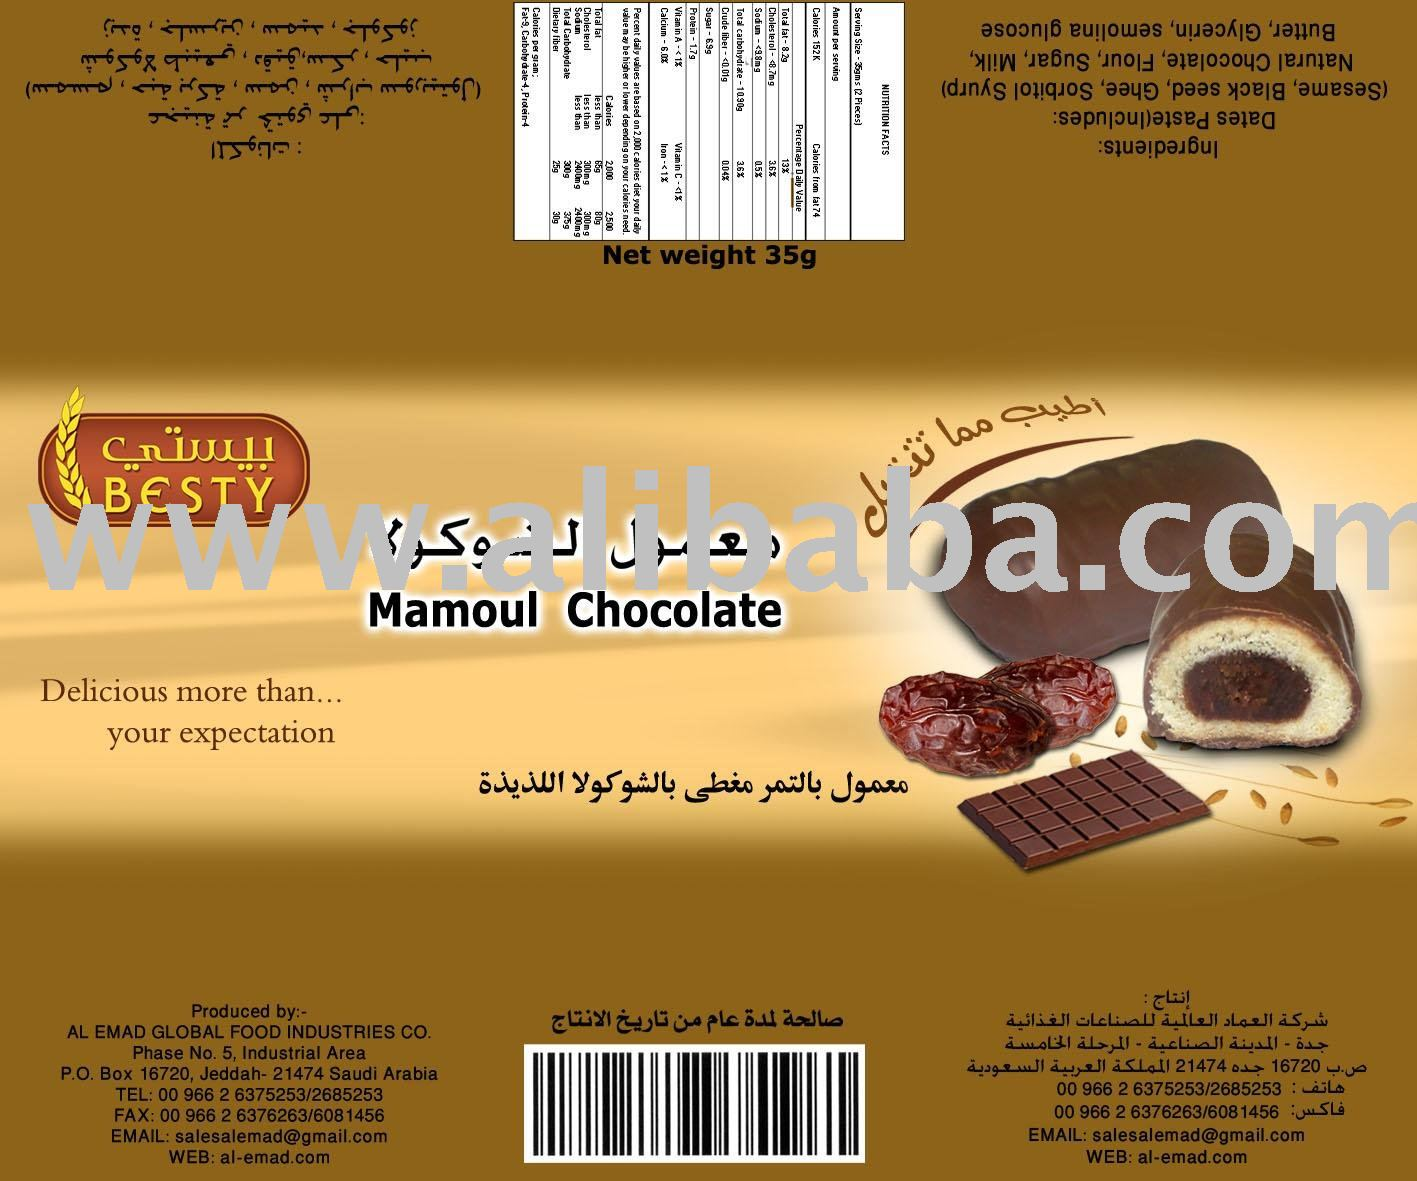 Chocolates, Cookies (mamoul), Bakery Items